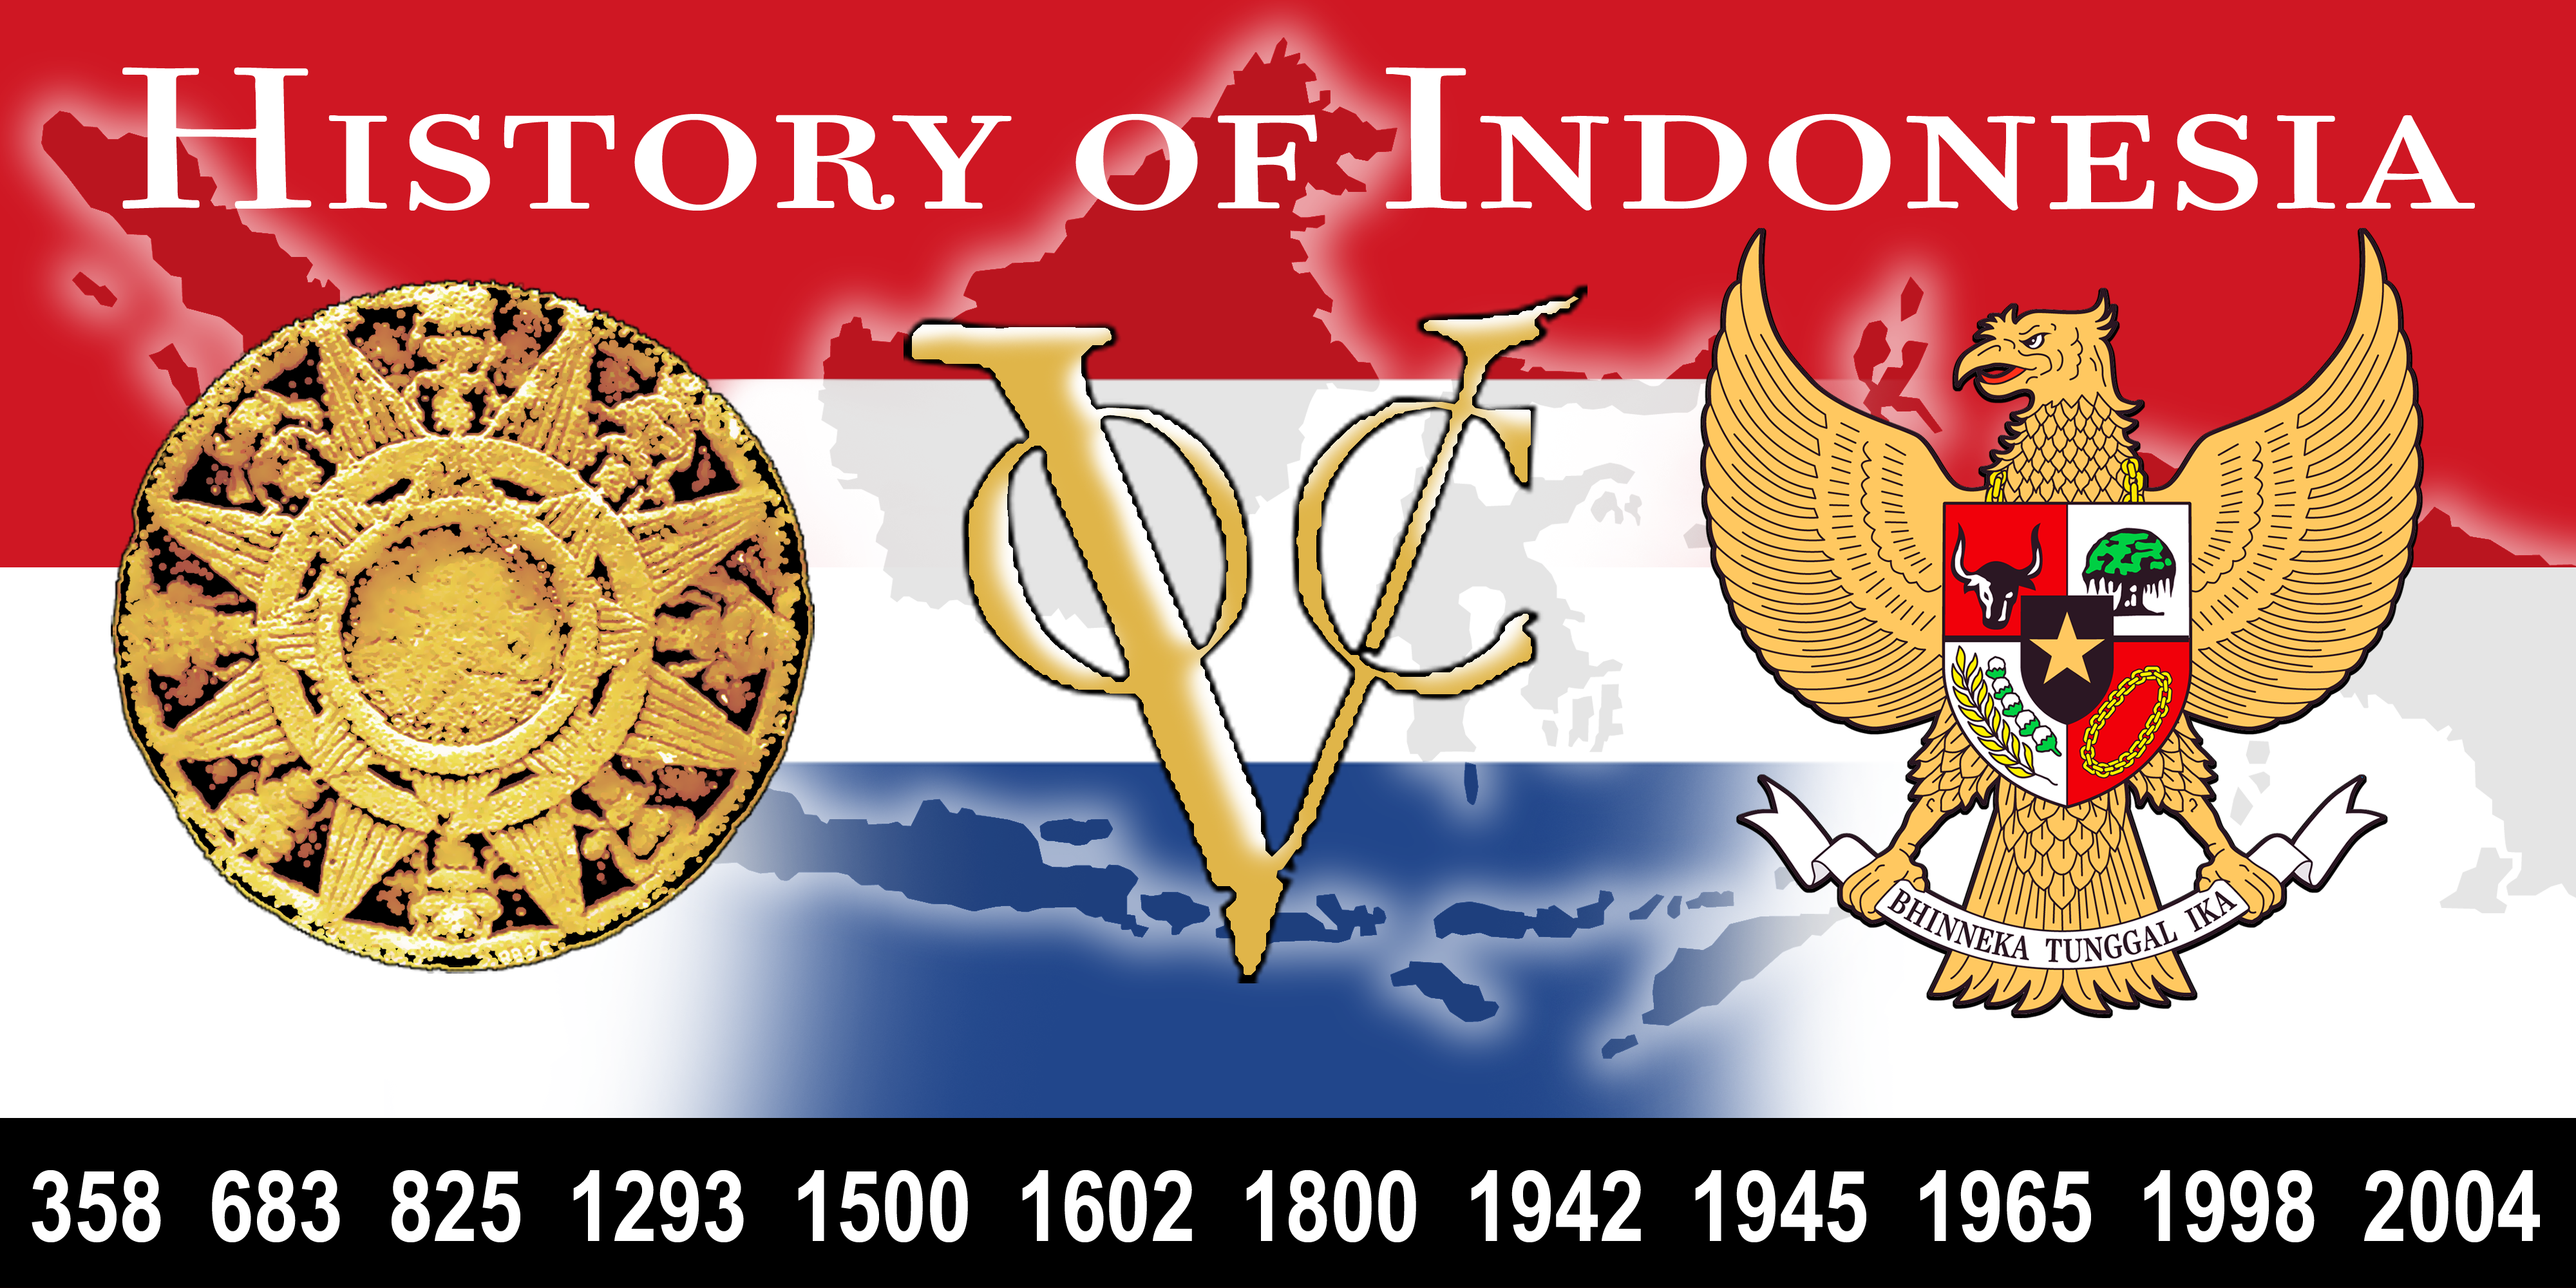 the history of indonesia Indonesia flag - colors - meaning significance and symbolism of national flag of indonesia - pictures, history & facts - all about indonesia flag information for kids - indonesiai flag images and photos.